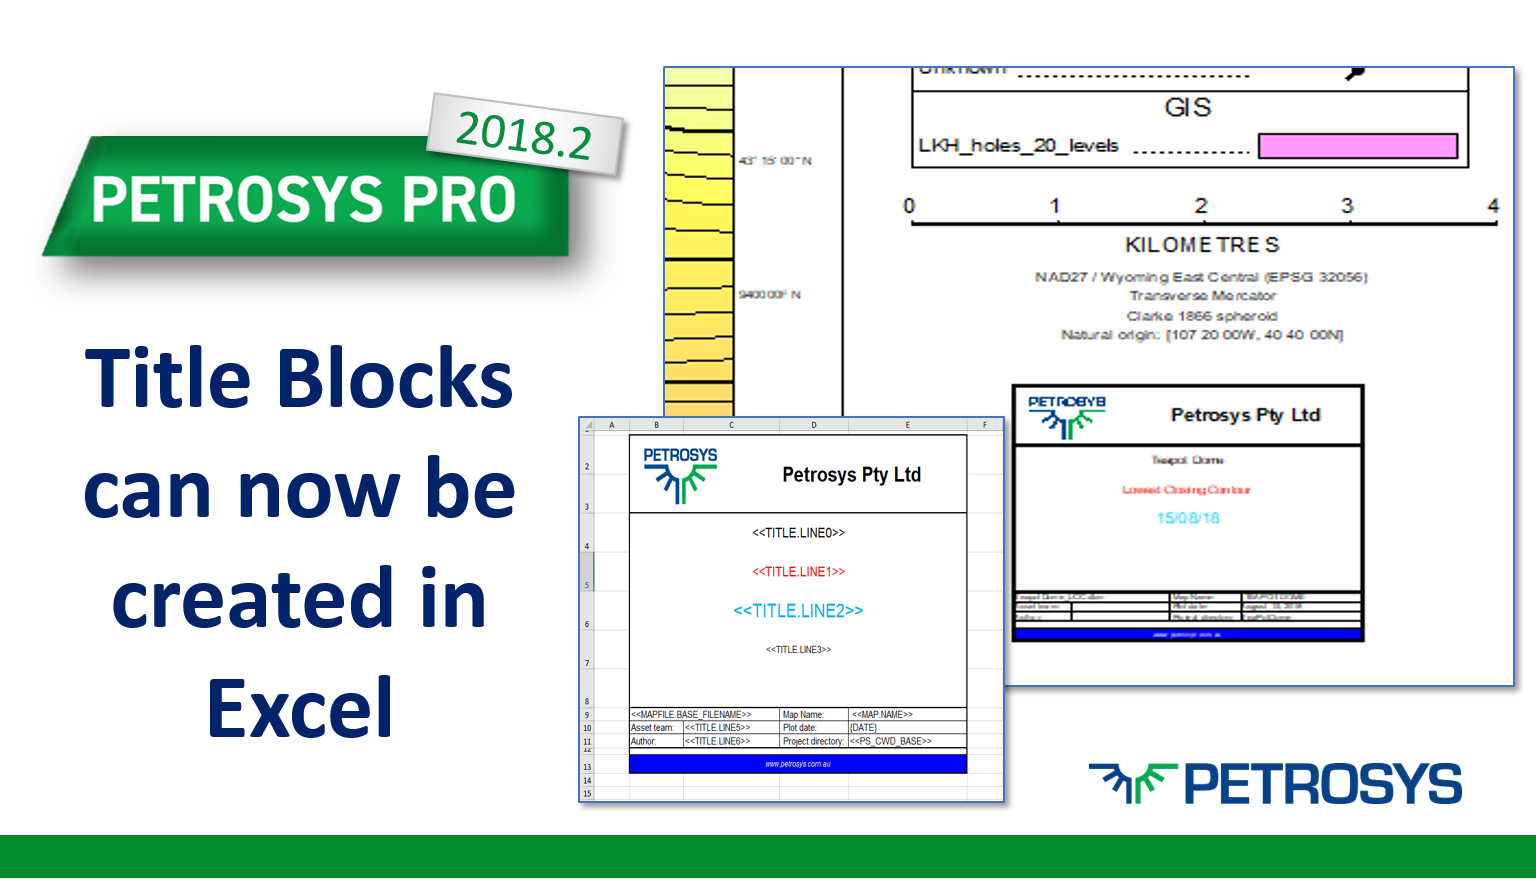 Title Blocks can now be created in Excel